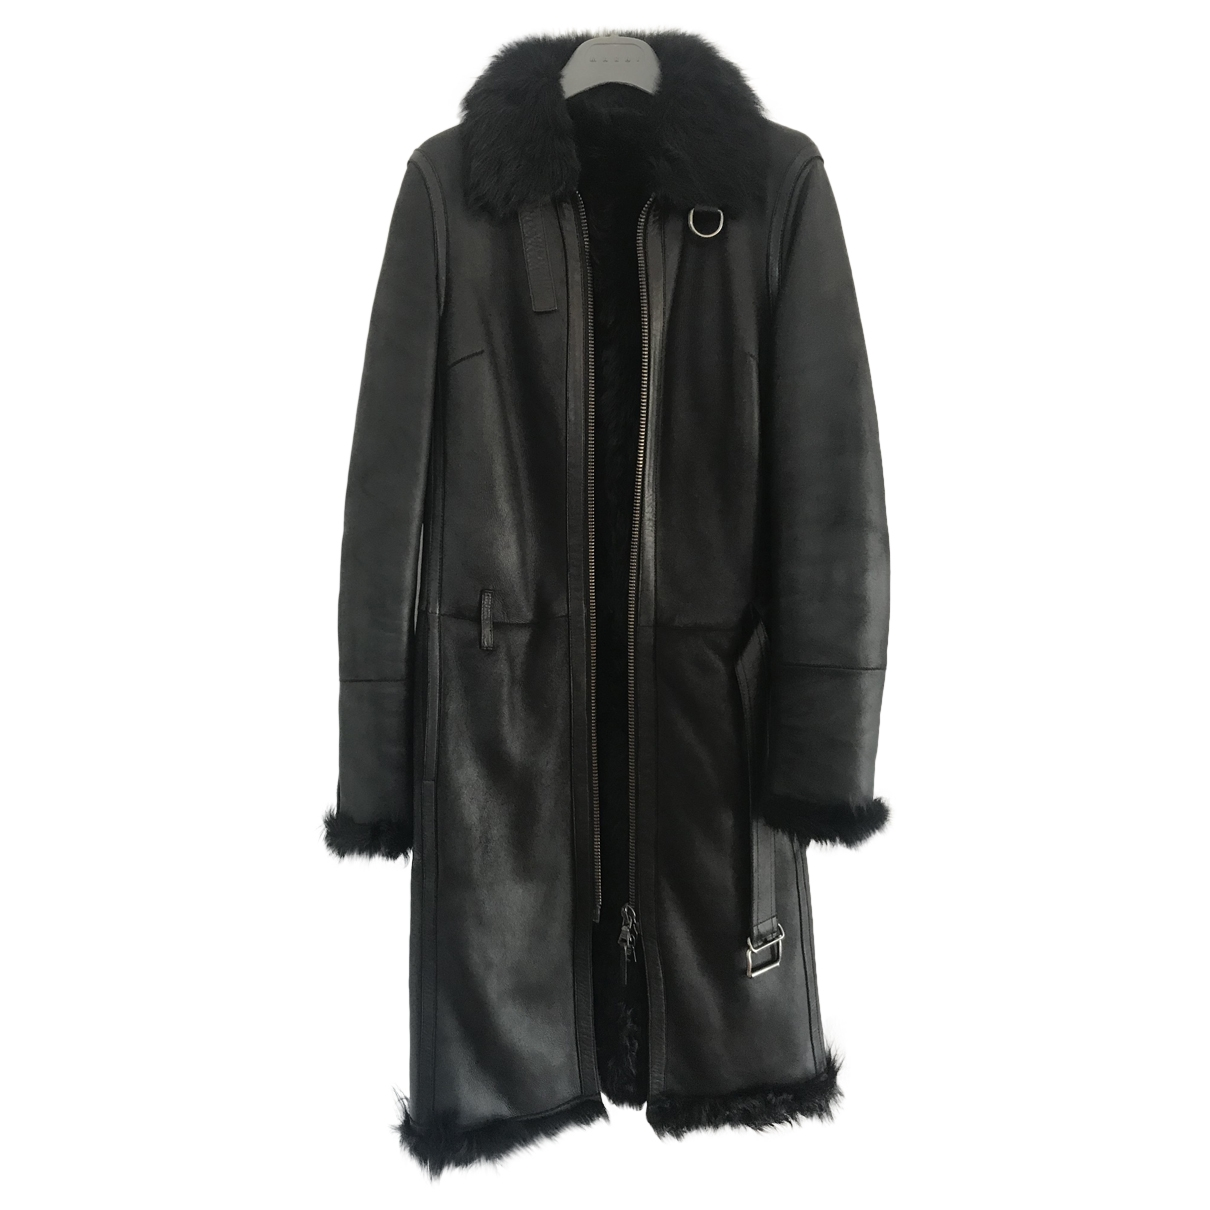 Prada \N Black Shearling coat for Women 44 IT